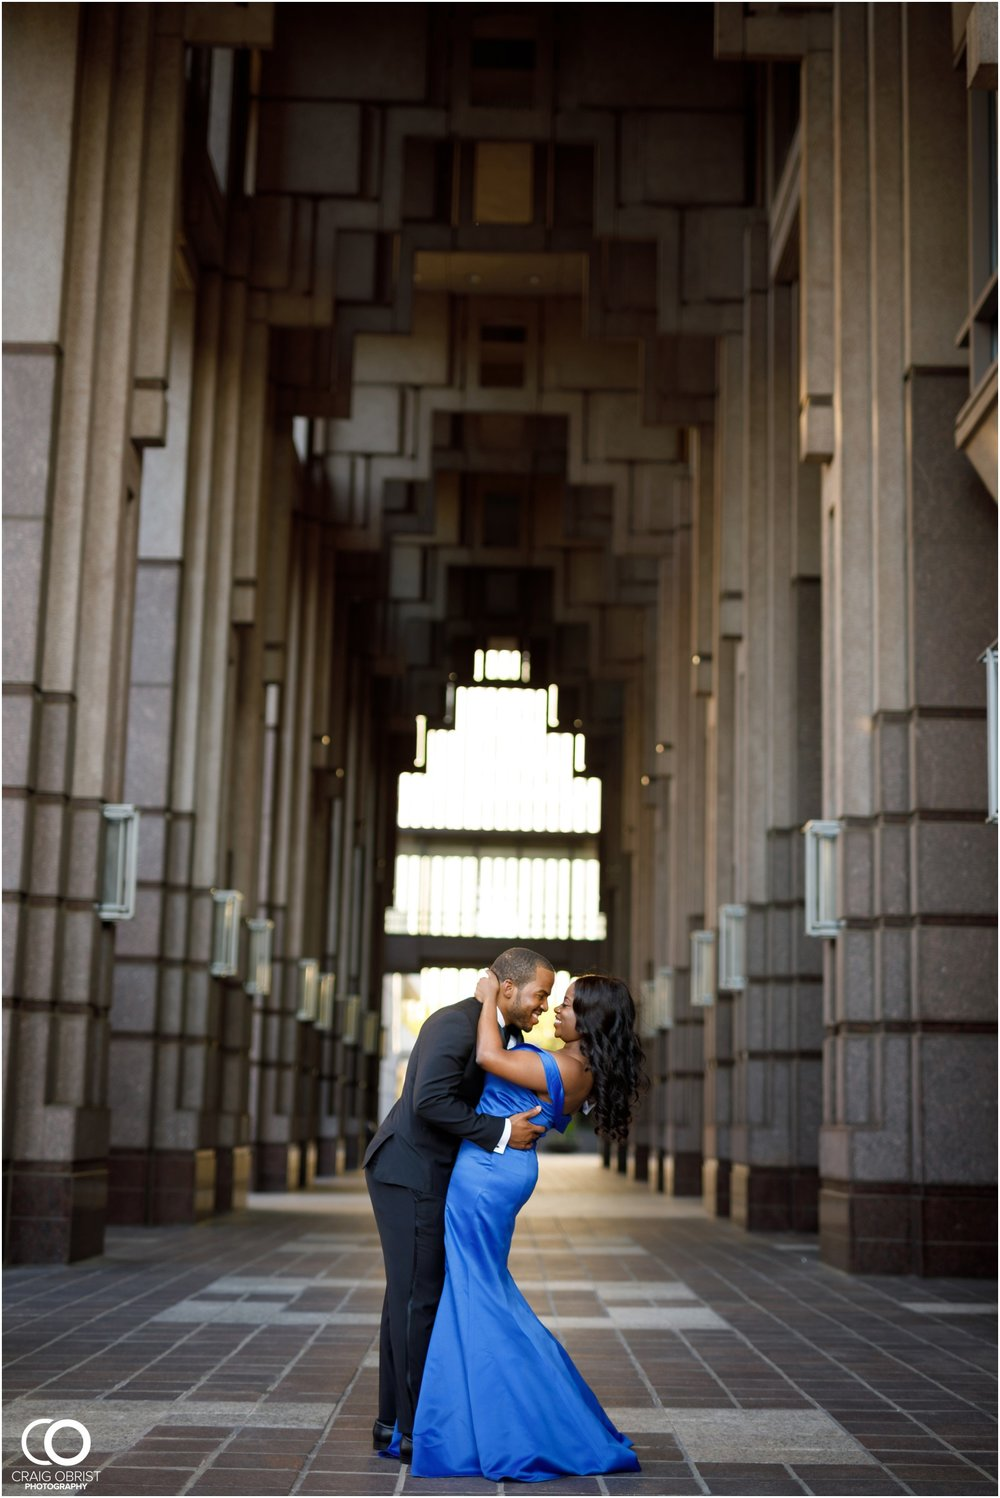 High Museum Atlanta Atlantic Station Engagement Portraits_0021.jpg